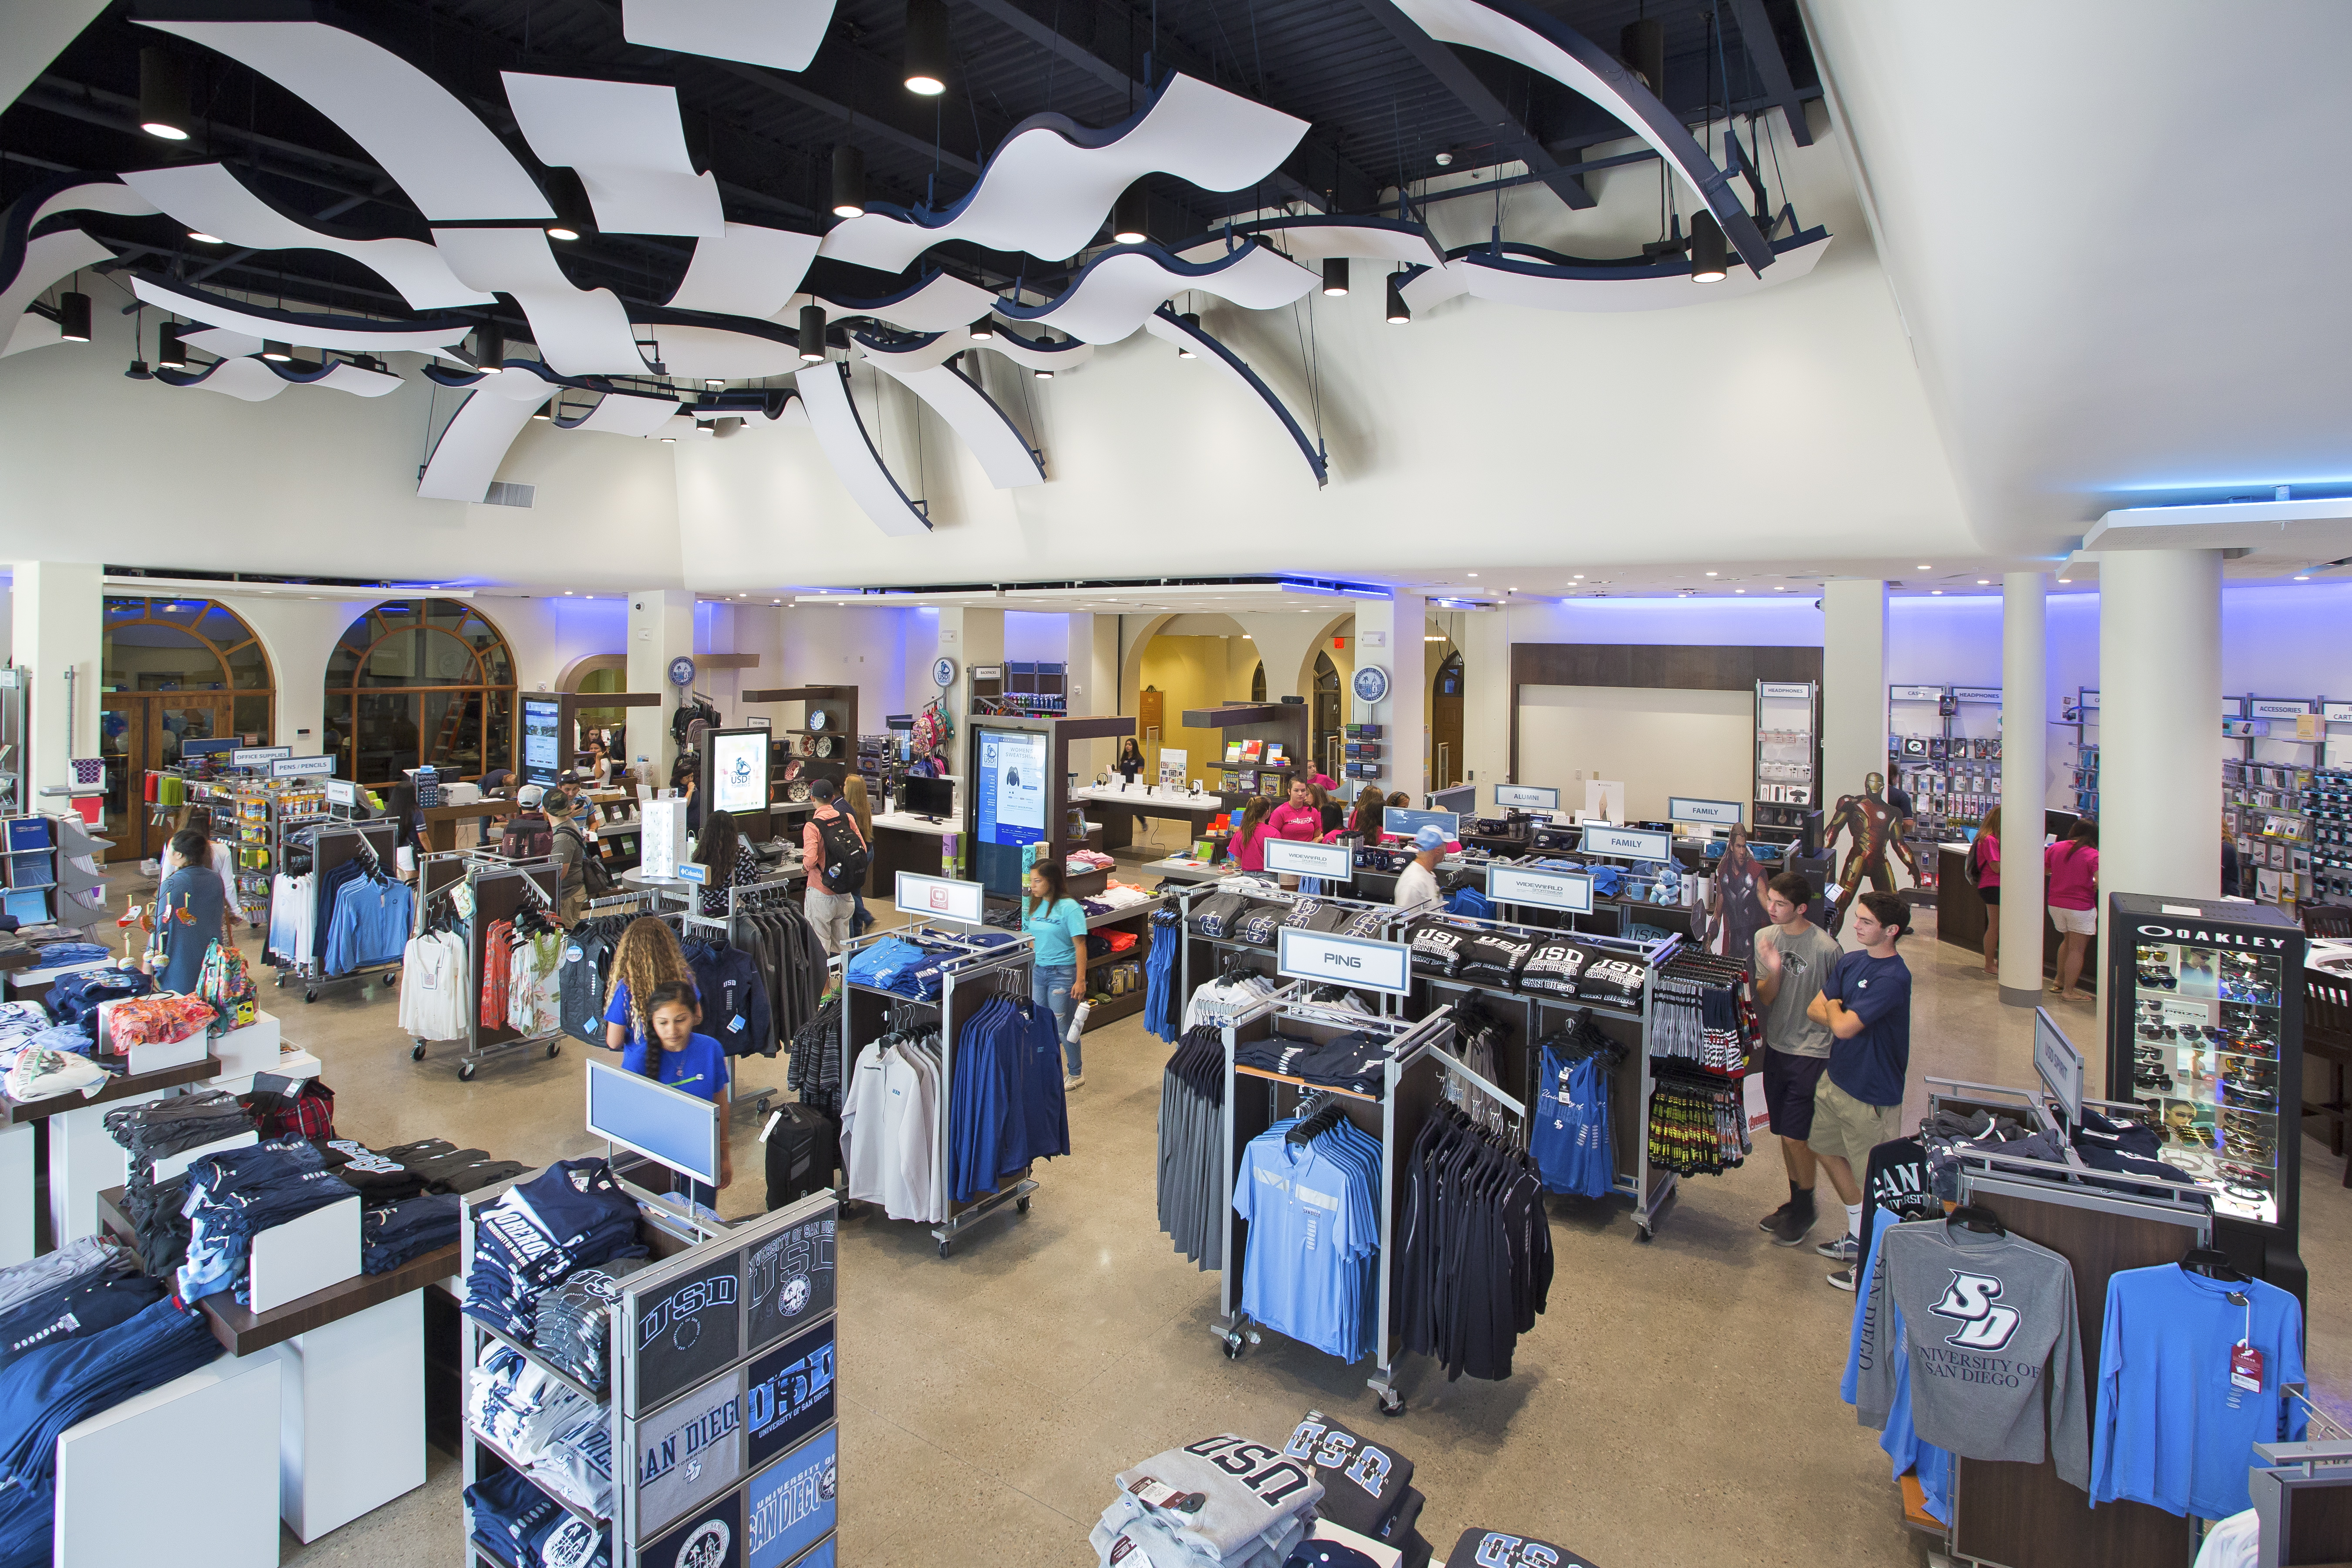 Digital walls and screens, interactive retail technology and faster textbook sales also are new features of the 6,665-square-foot campus store.